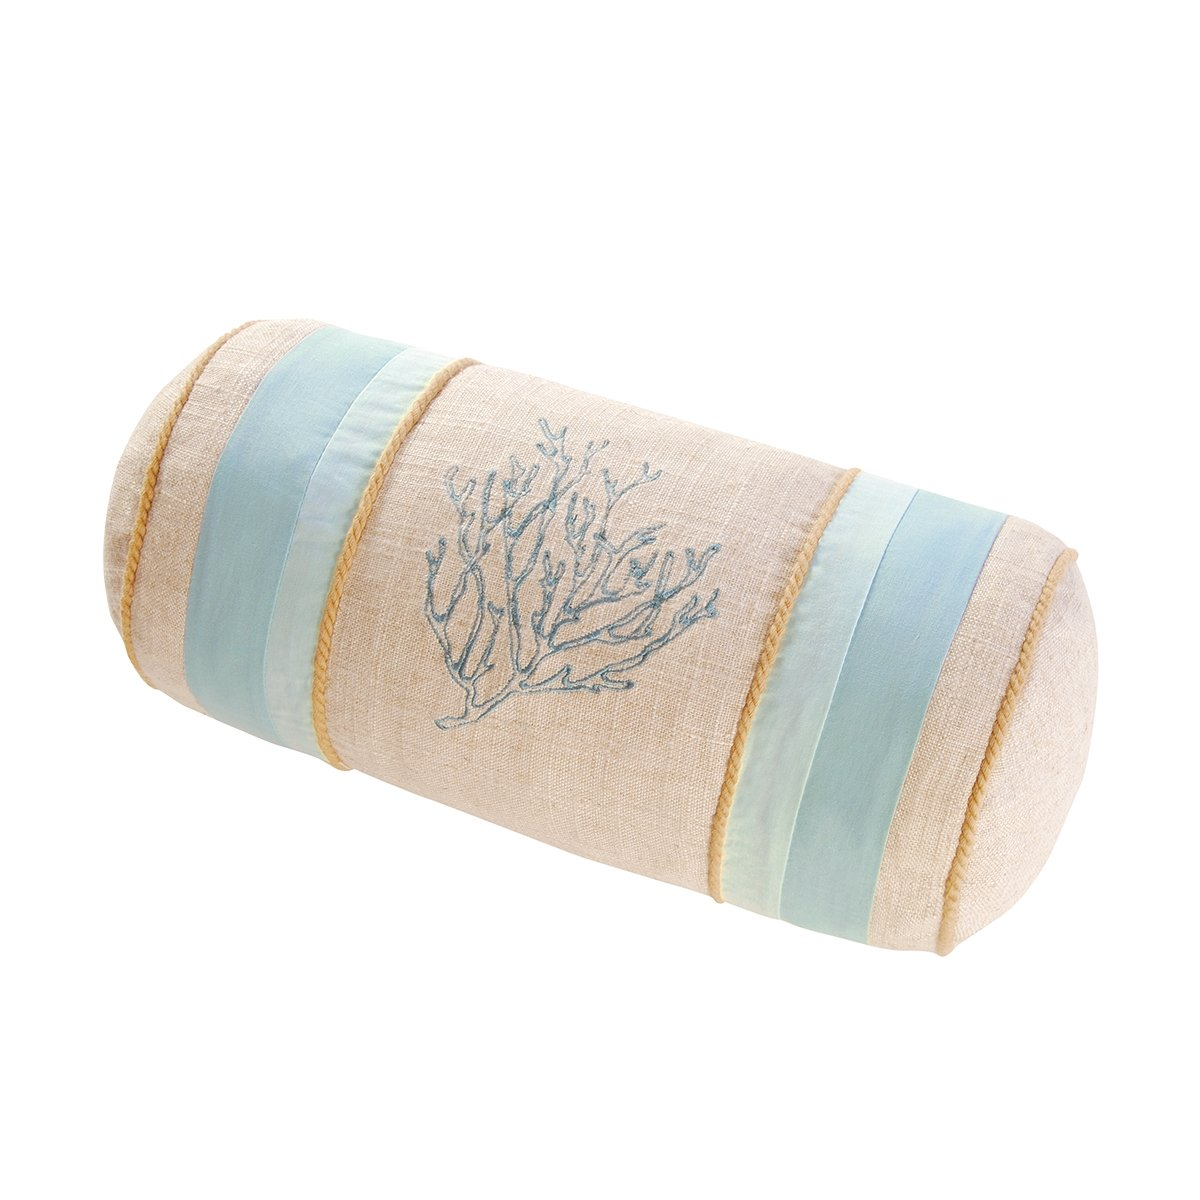 C&F Home Natural Shells 6 x 12 in. Neckroll with Coral Embroidery